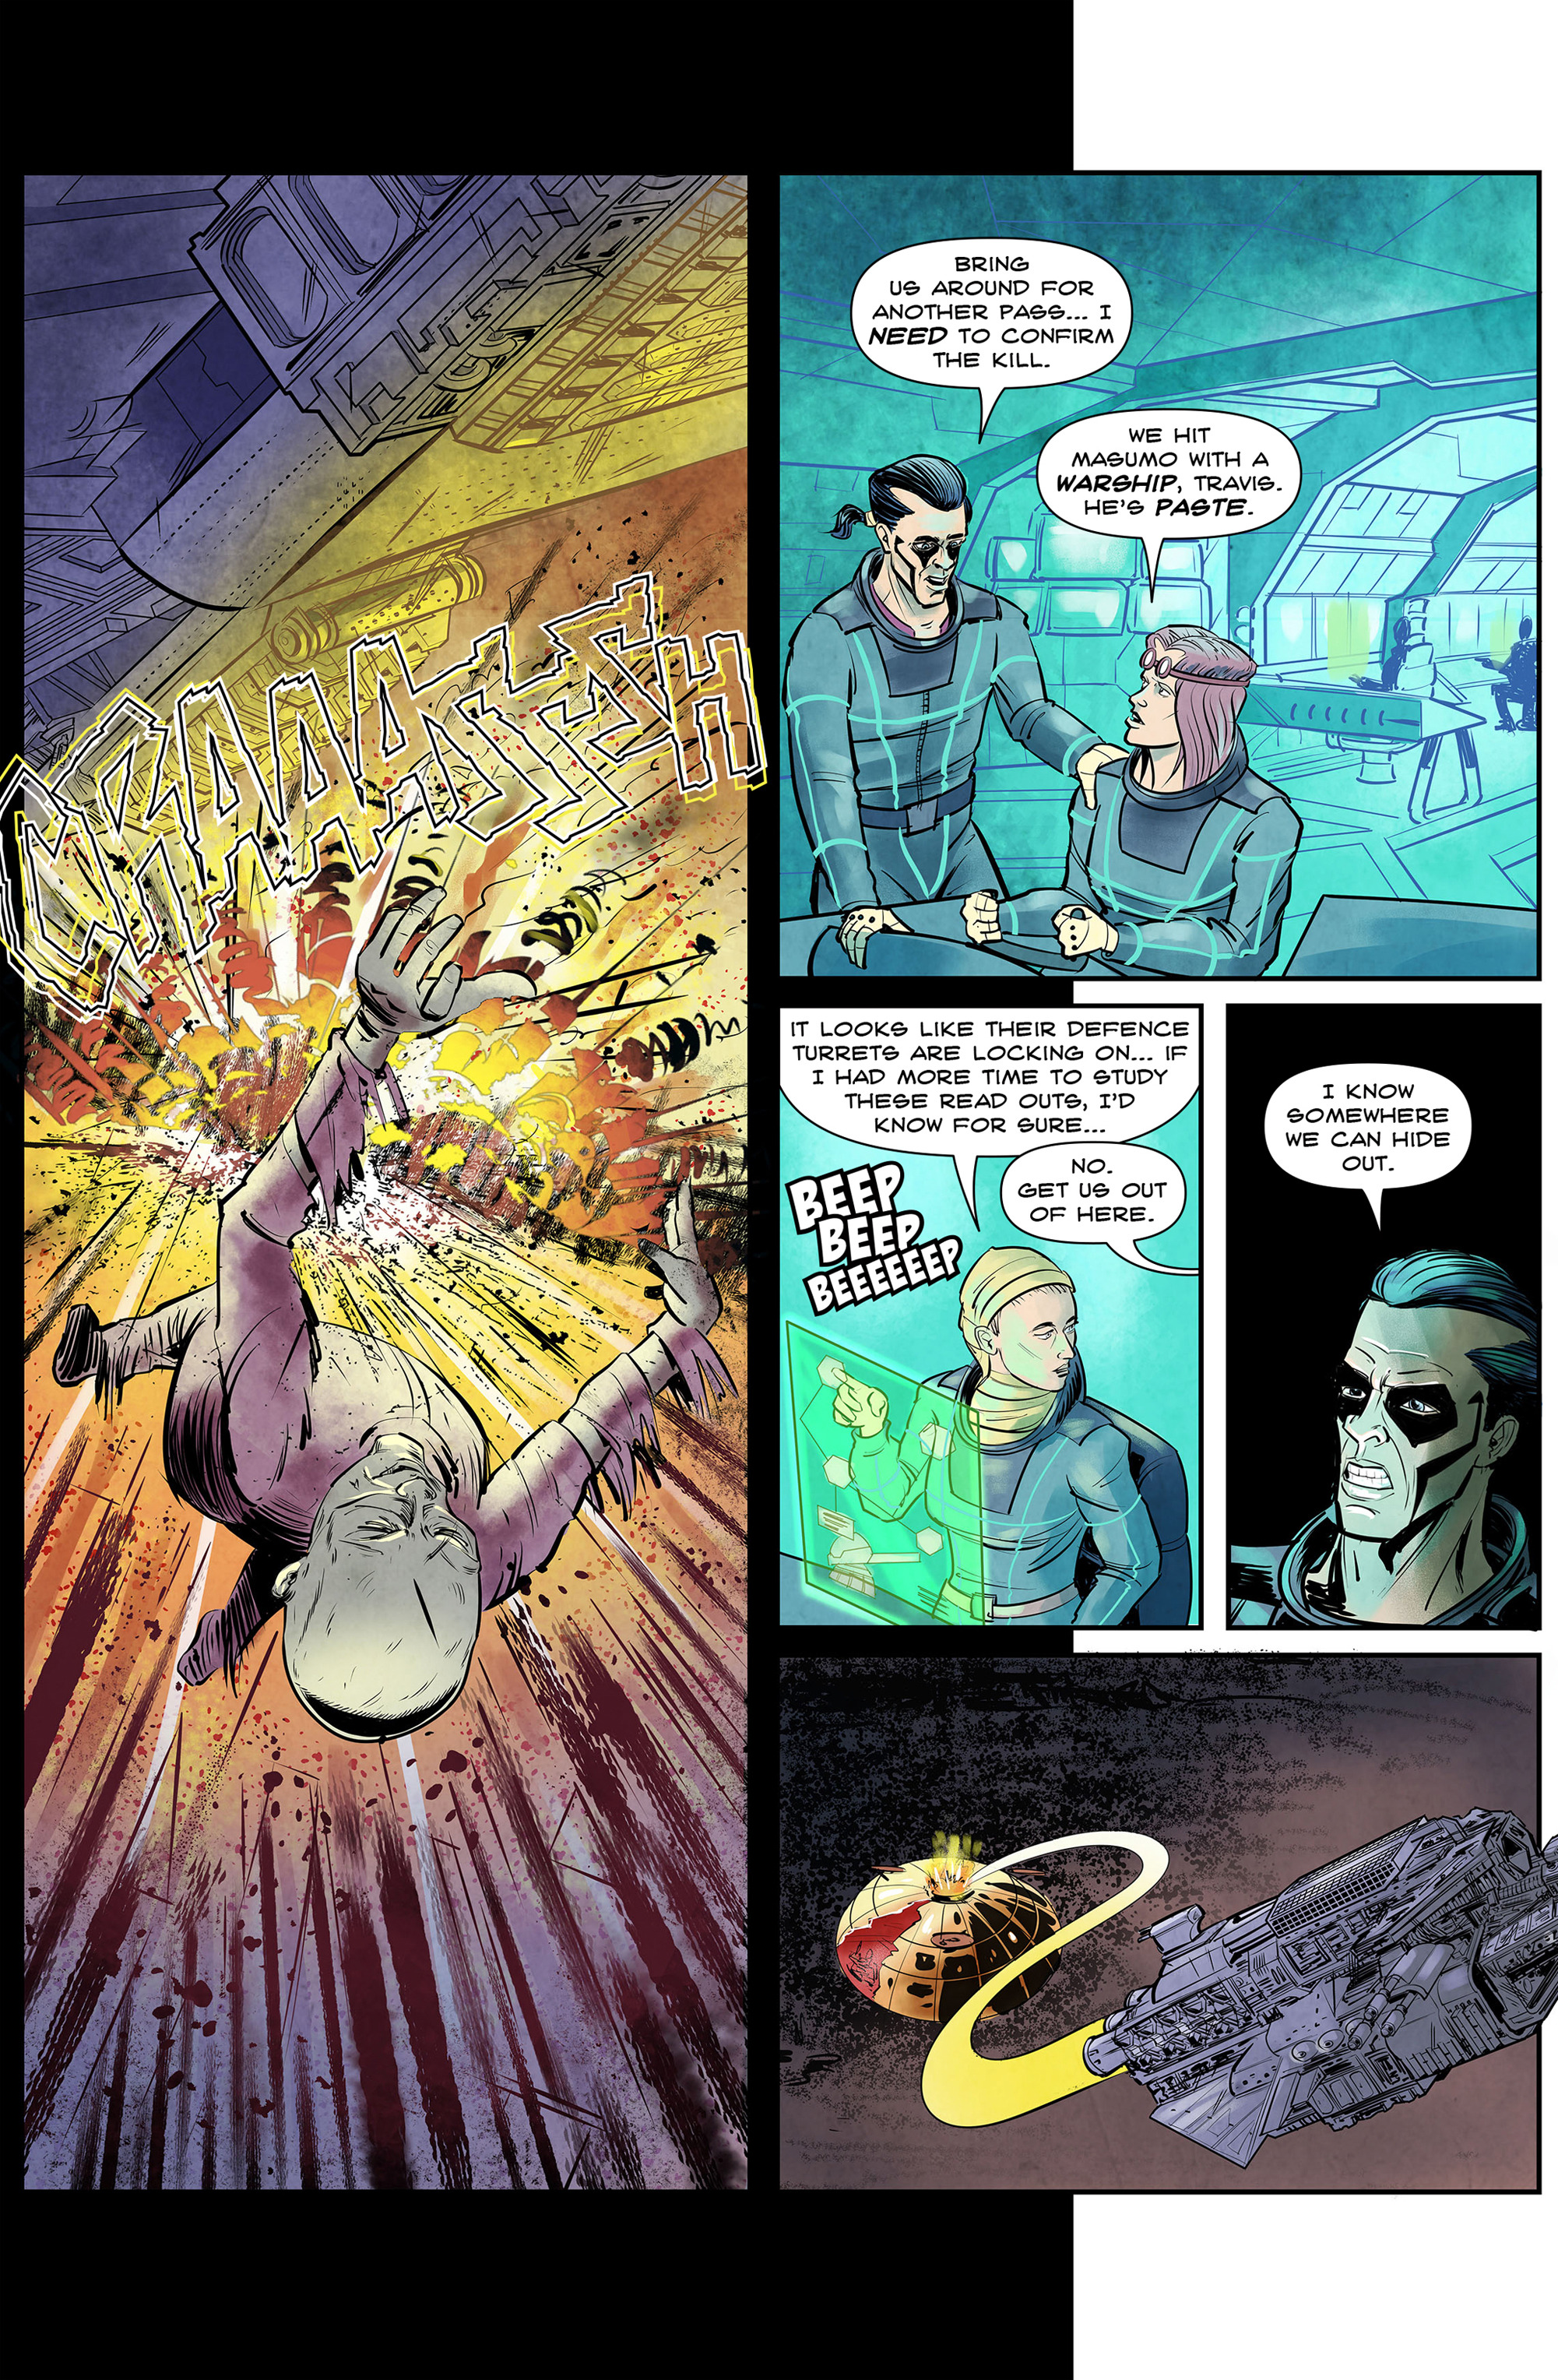 Read online 100% Biodegradable comic -  Issue #14 - 34